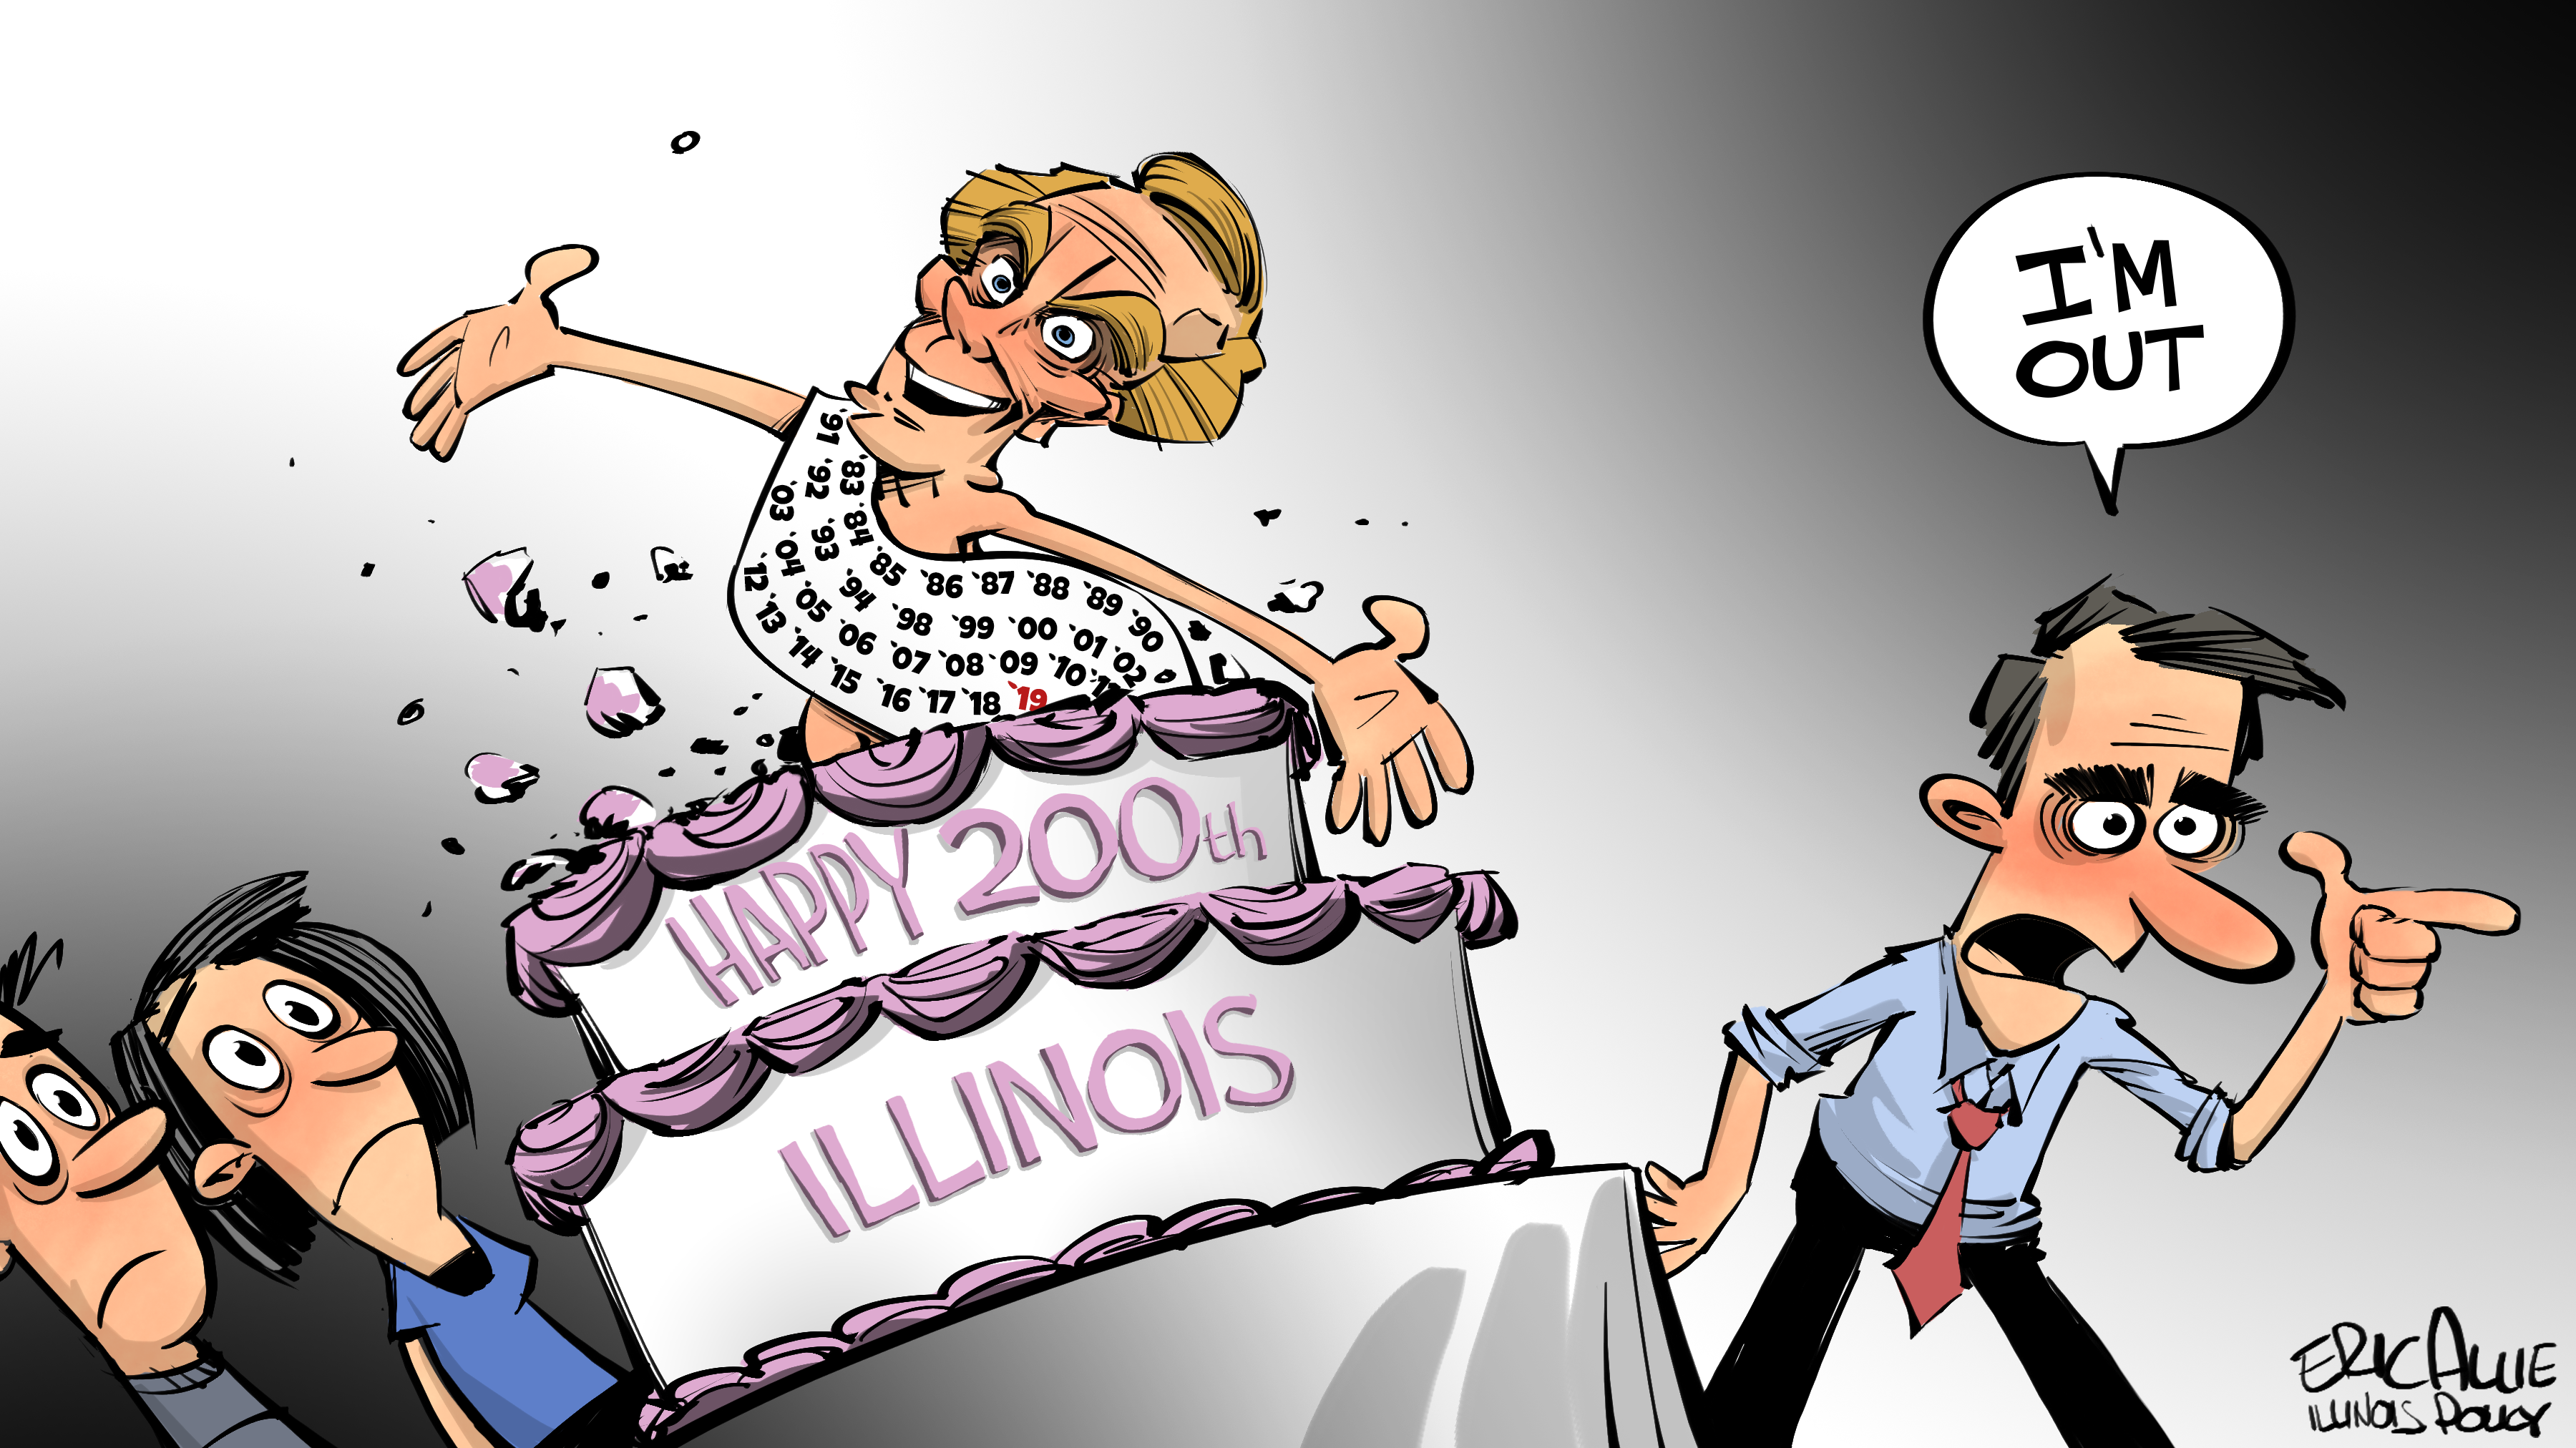 Happy 200th Birthday, Illinois